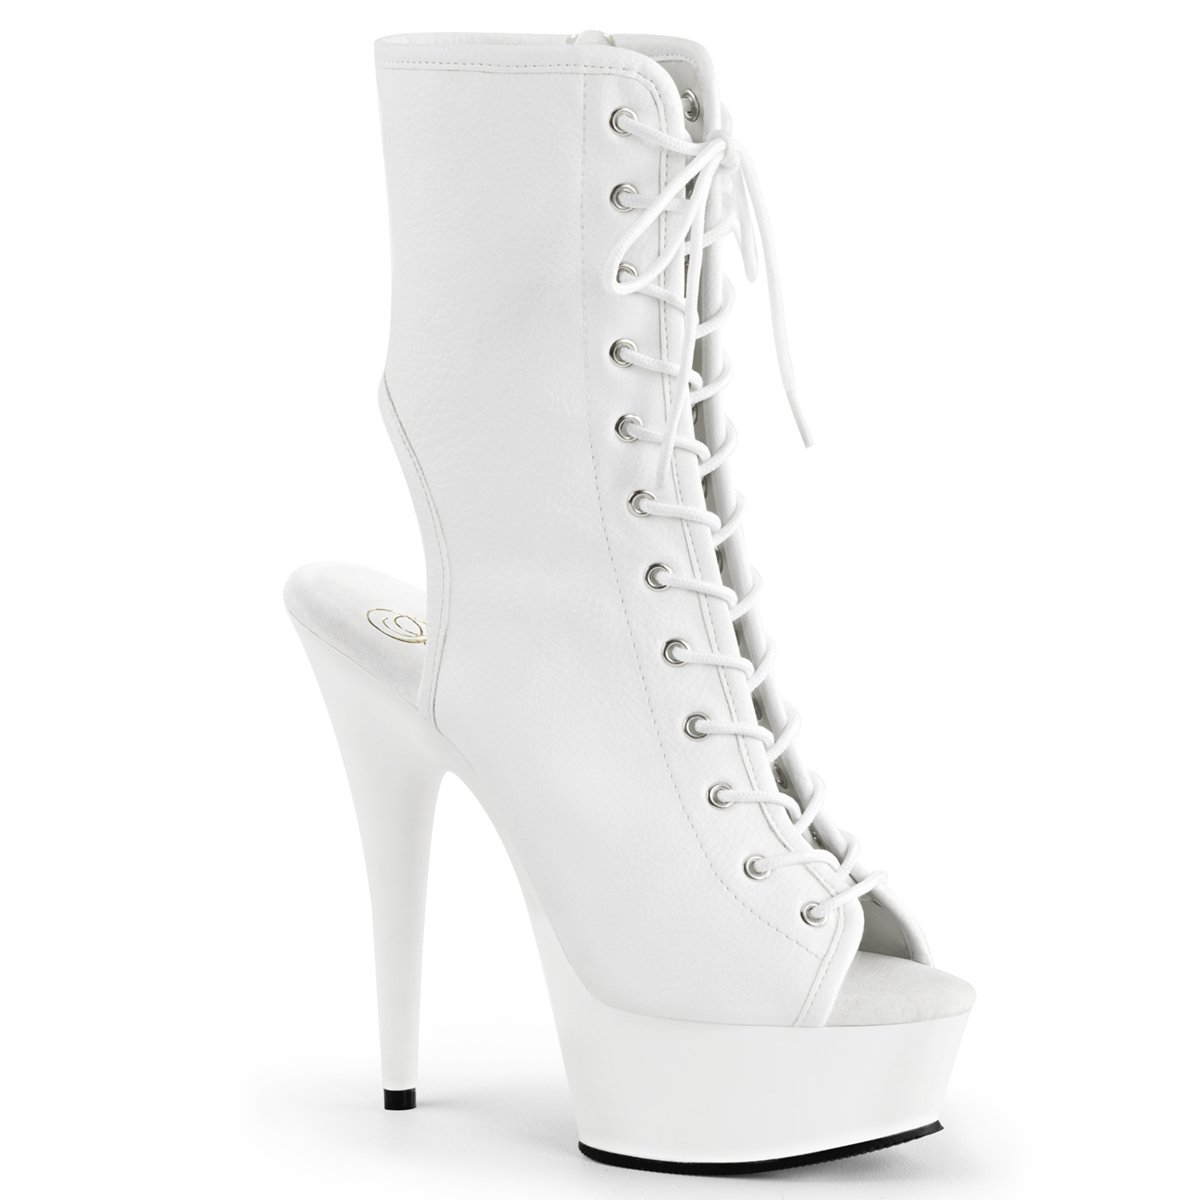 Pleaser Womens DELIGHT-1016 Boots B013LGY74Y 6 B(M) US|Wht Pu/Wht